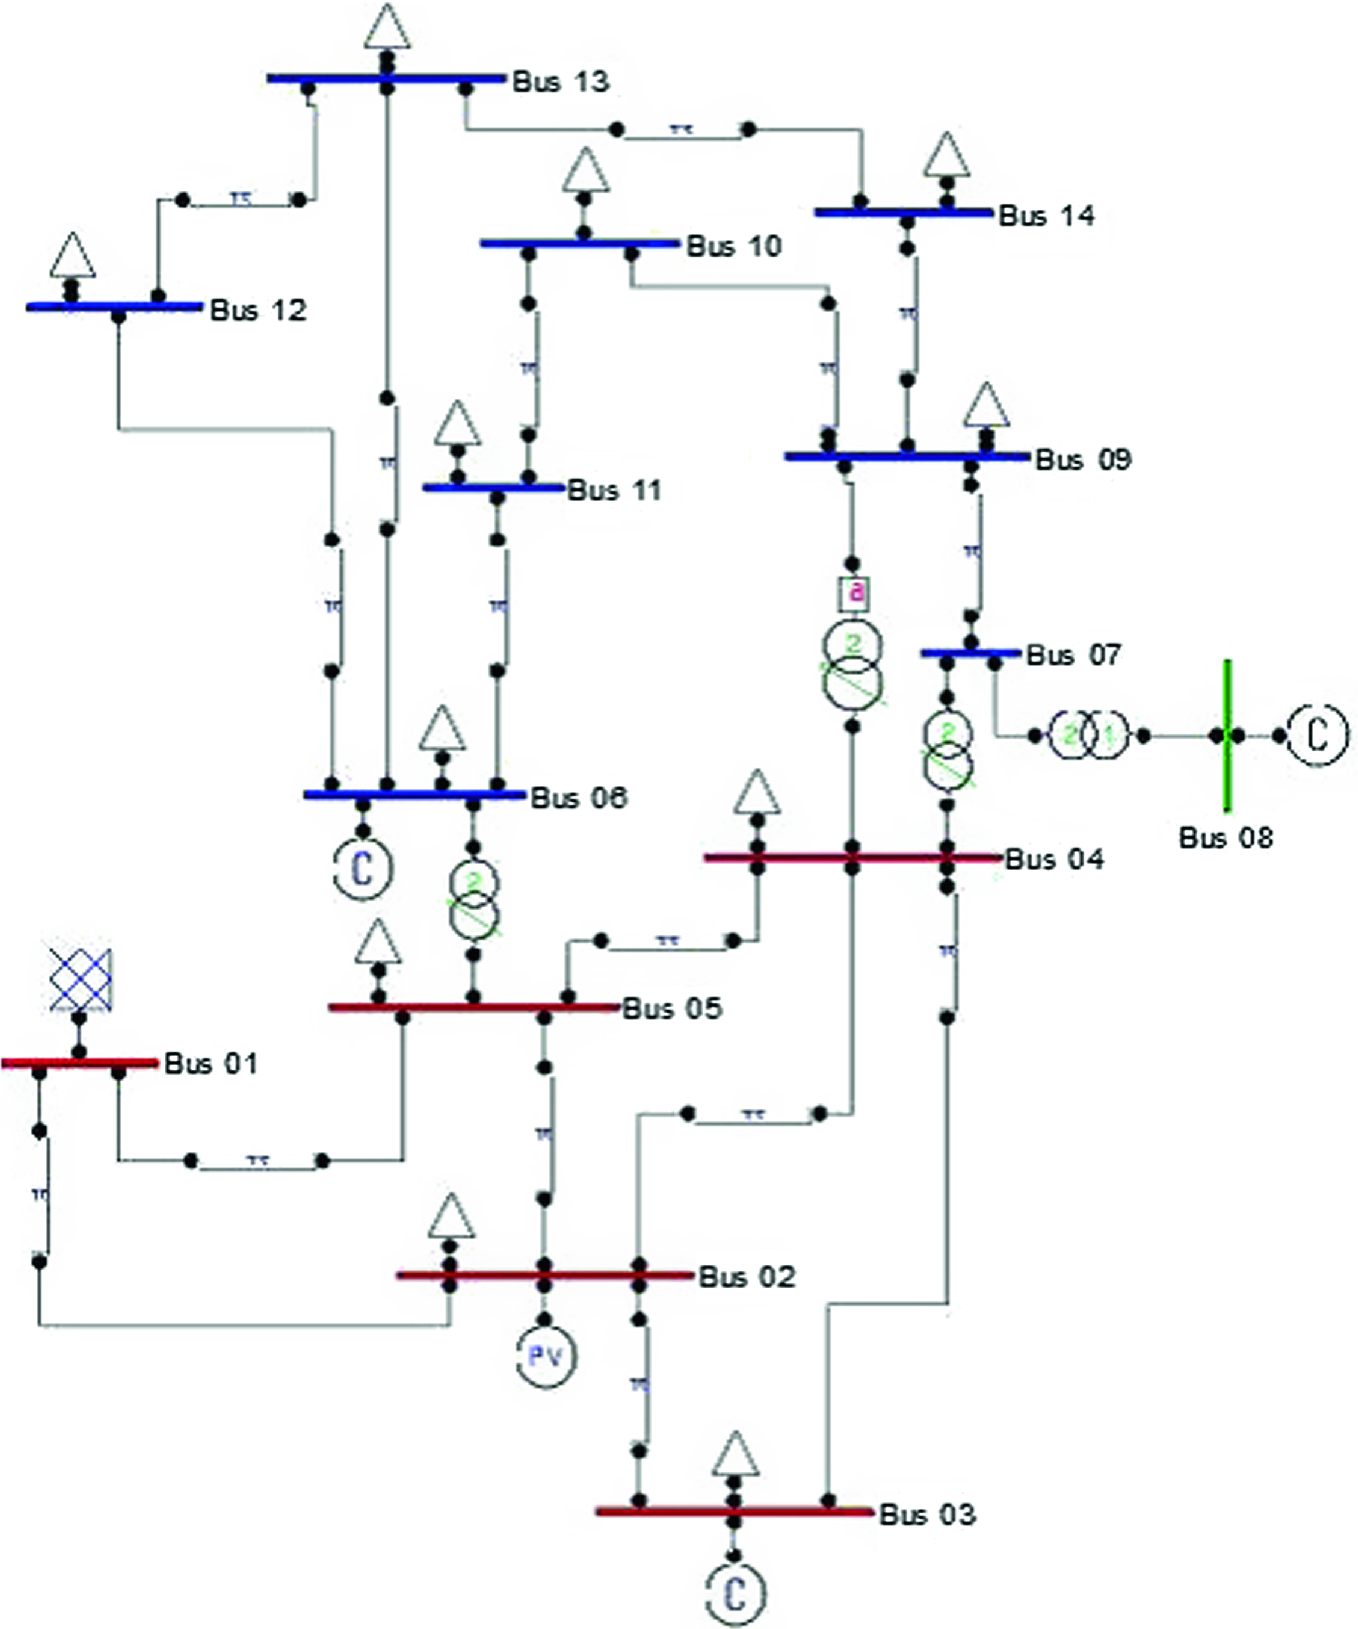 Enhancement of the Voltage Profile for an IEEE-14 Bus System